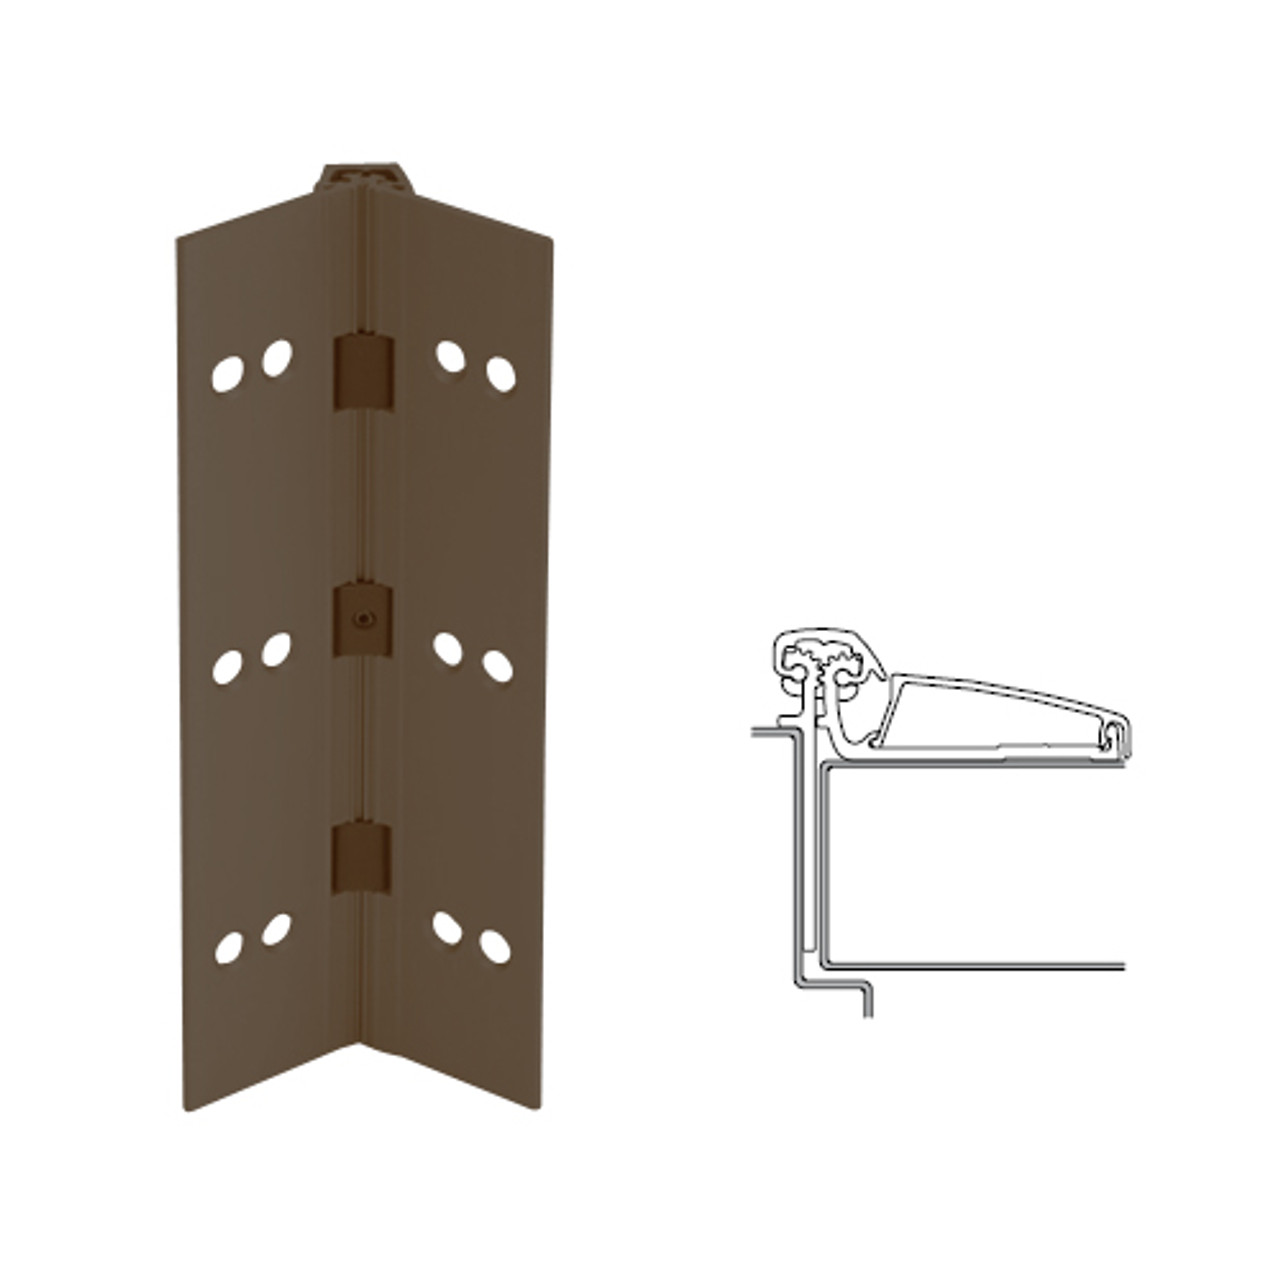 046XY-313AN-120-SECHM IVES Adjustable Half Surface Continuous Geared Hinges with Security Screws - Hex Pin Drive in Dark Bronze Anodized